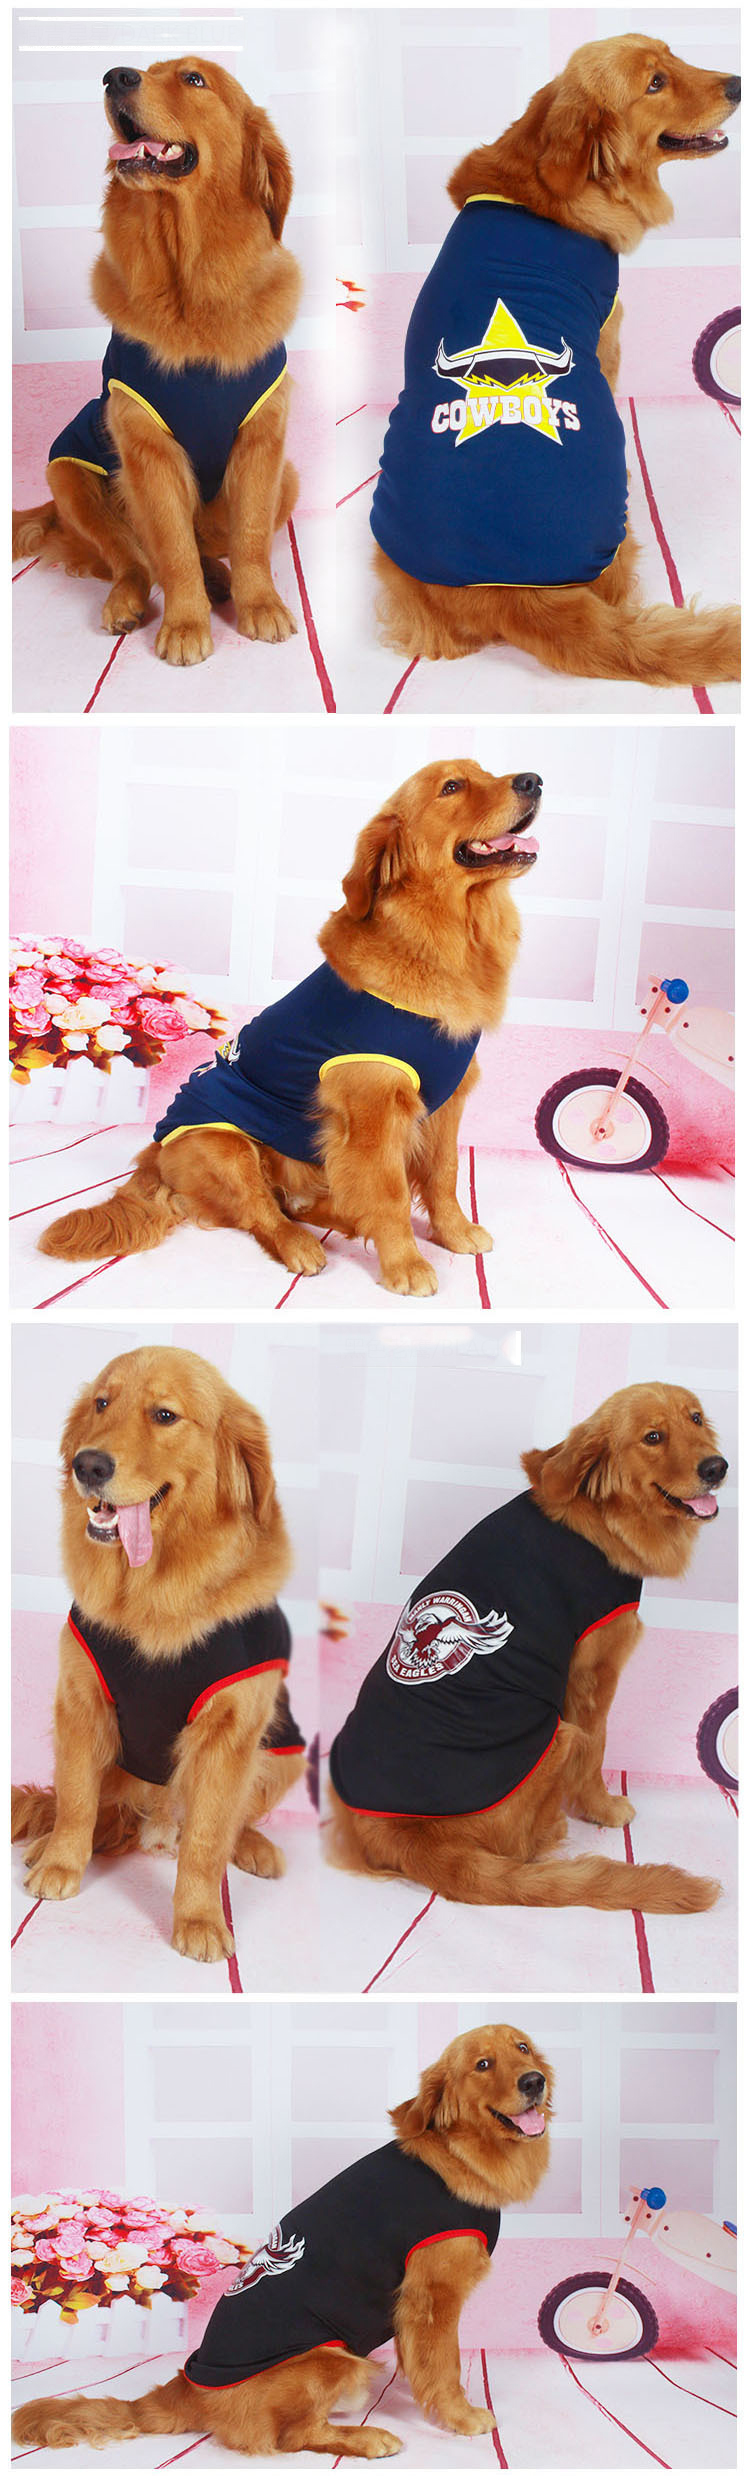 bulldog clothes for dogs (10)